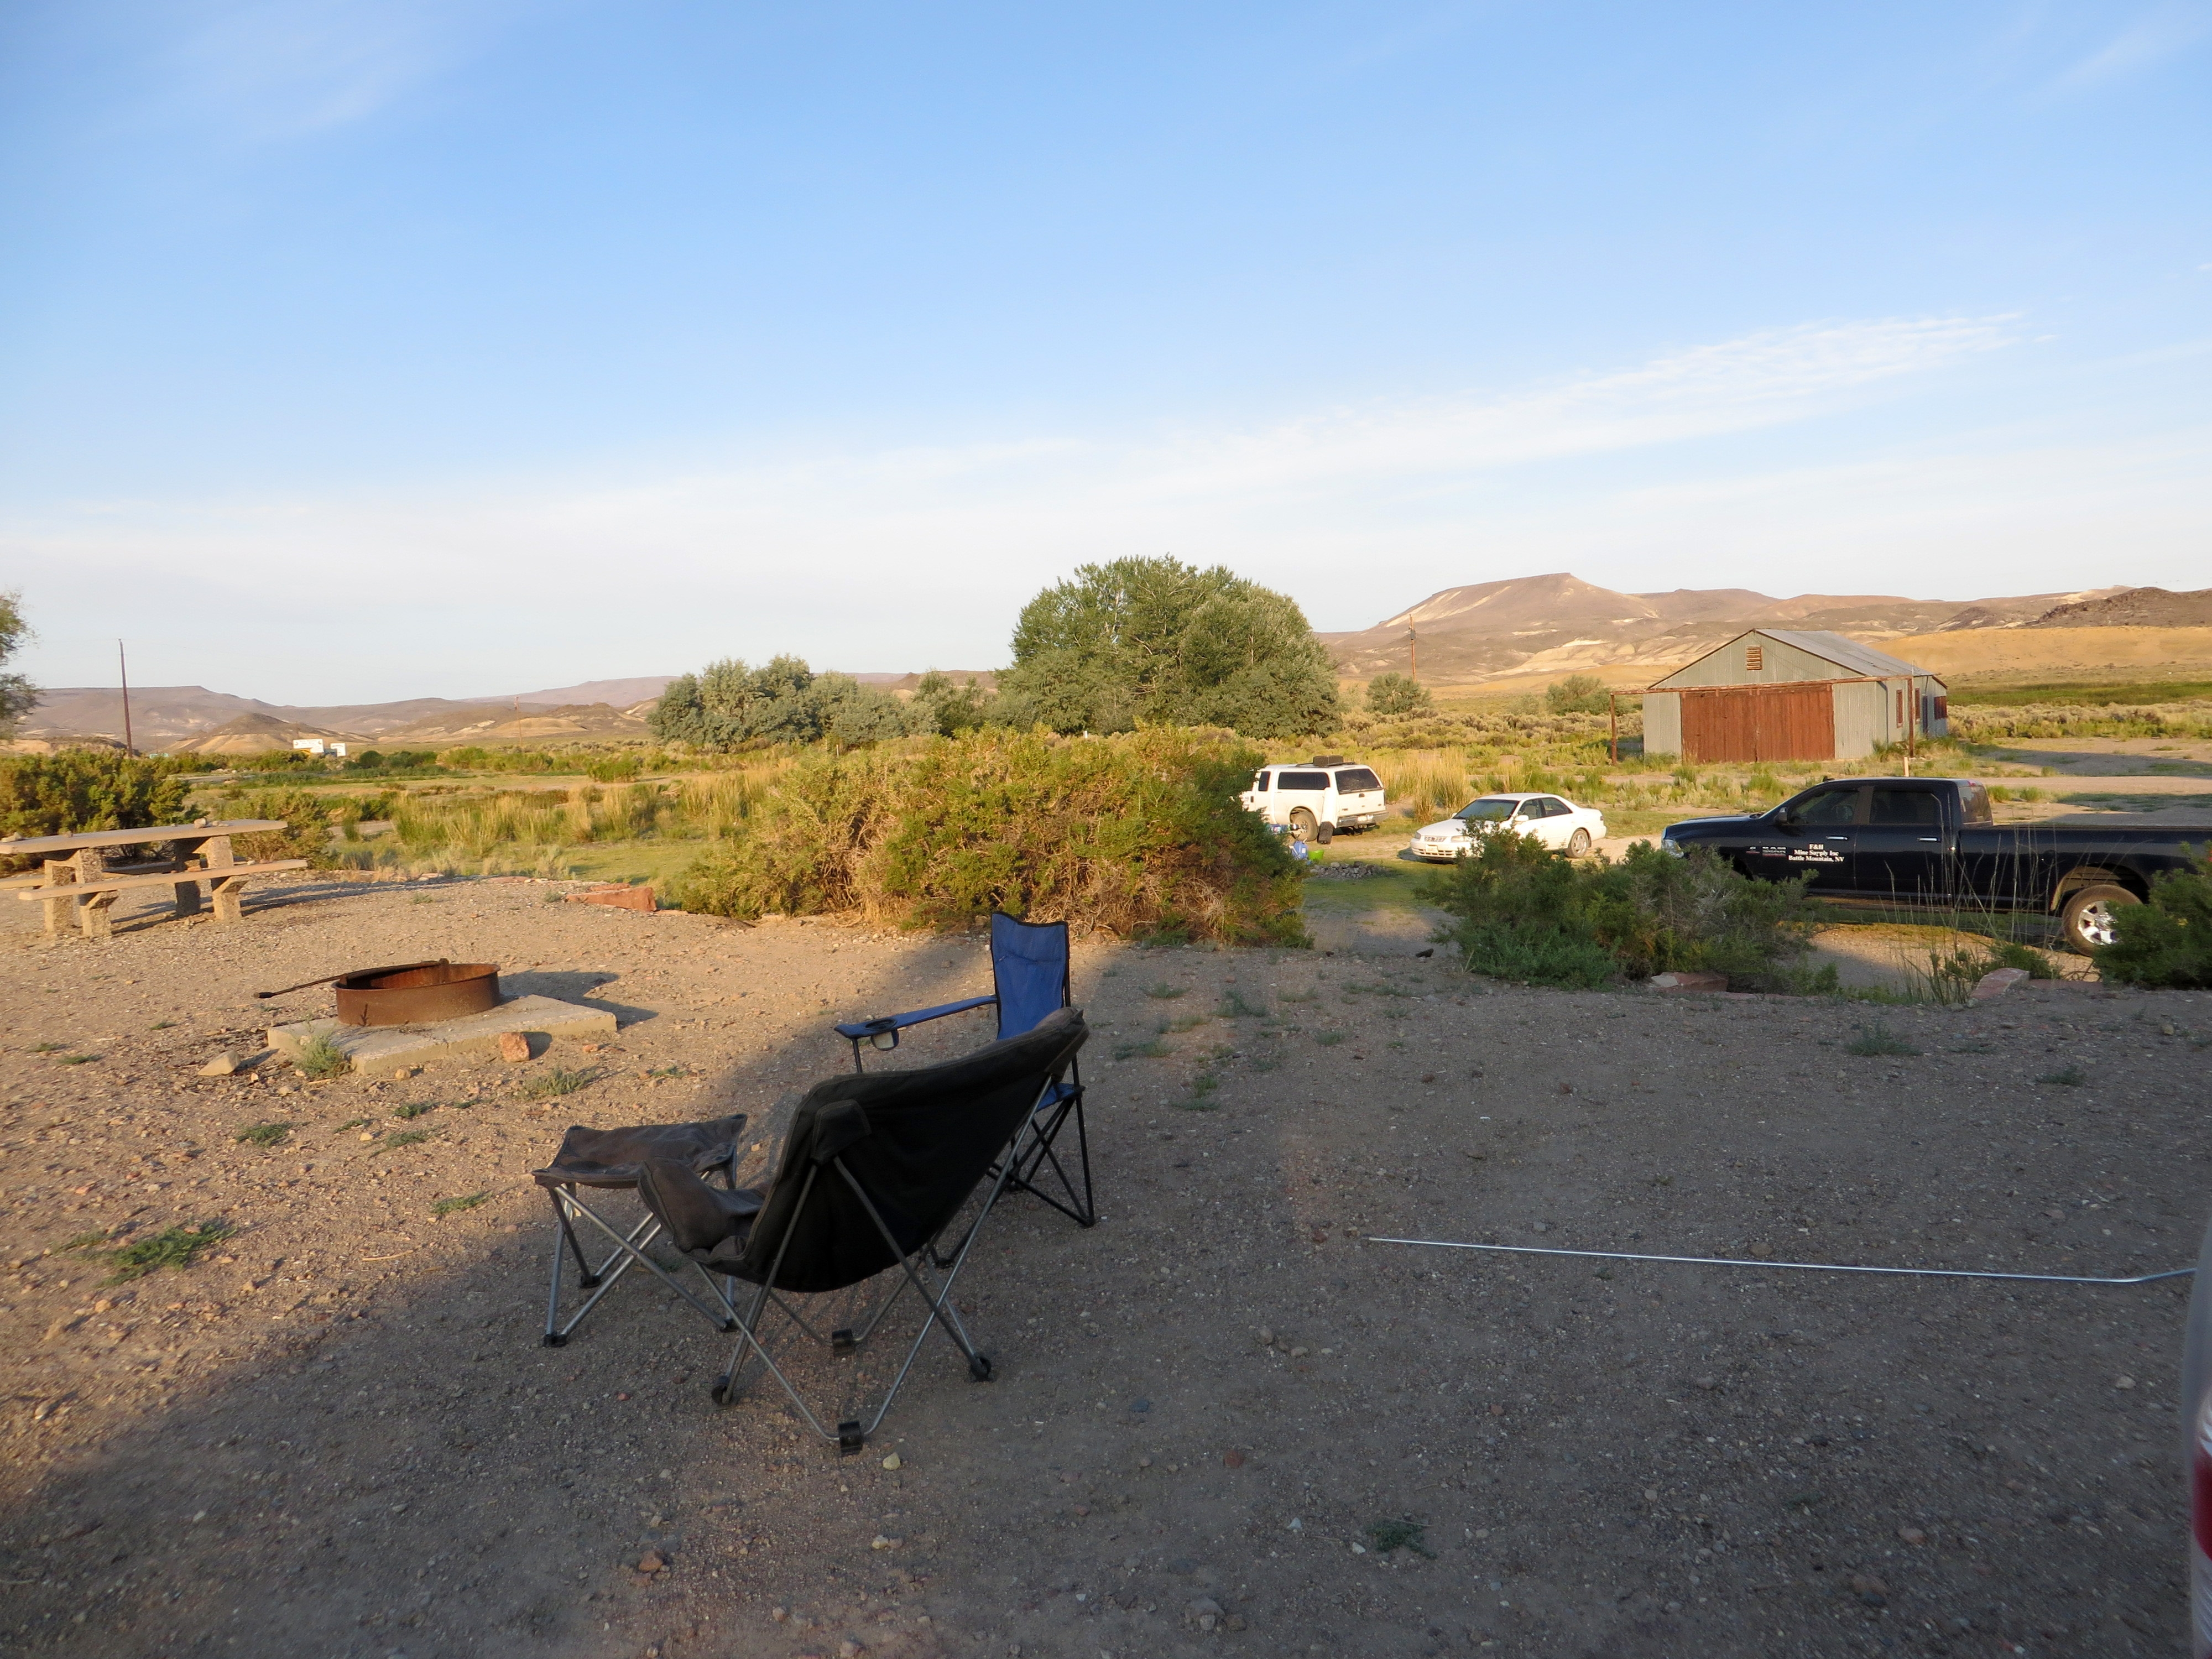 """Check out what Nevada calls a """"campsite"""". (photo by D. Speredelozzi)"""